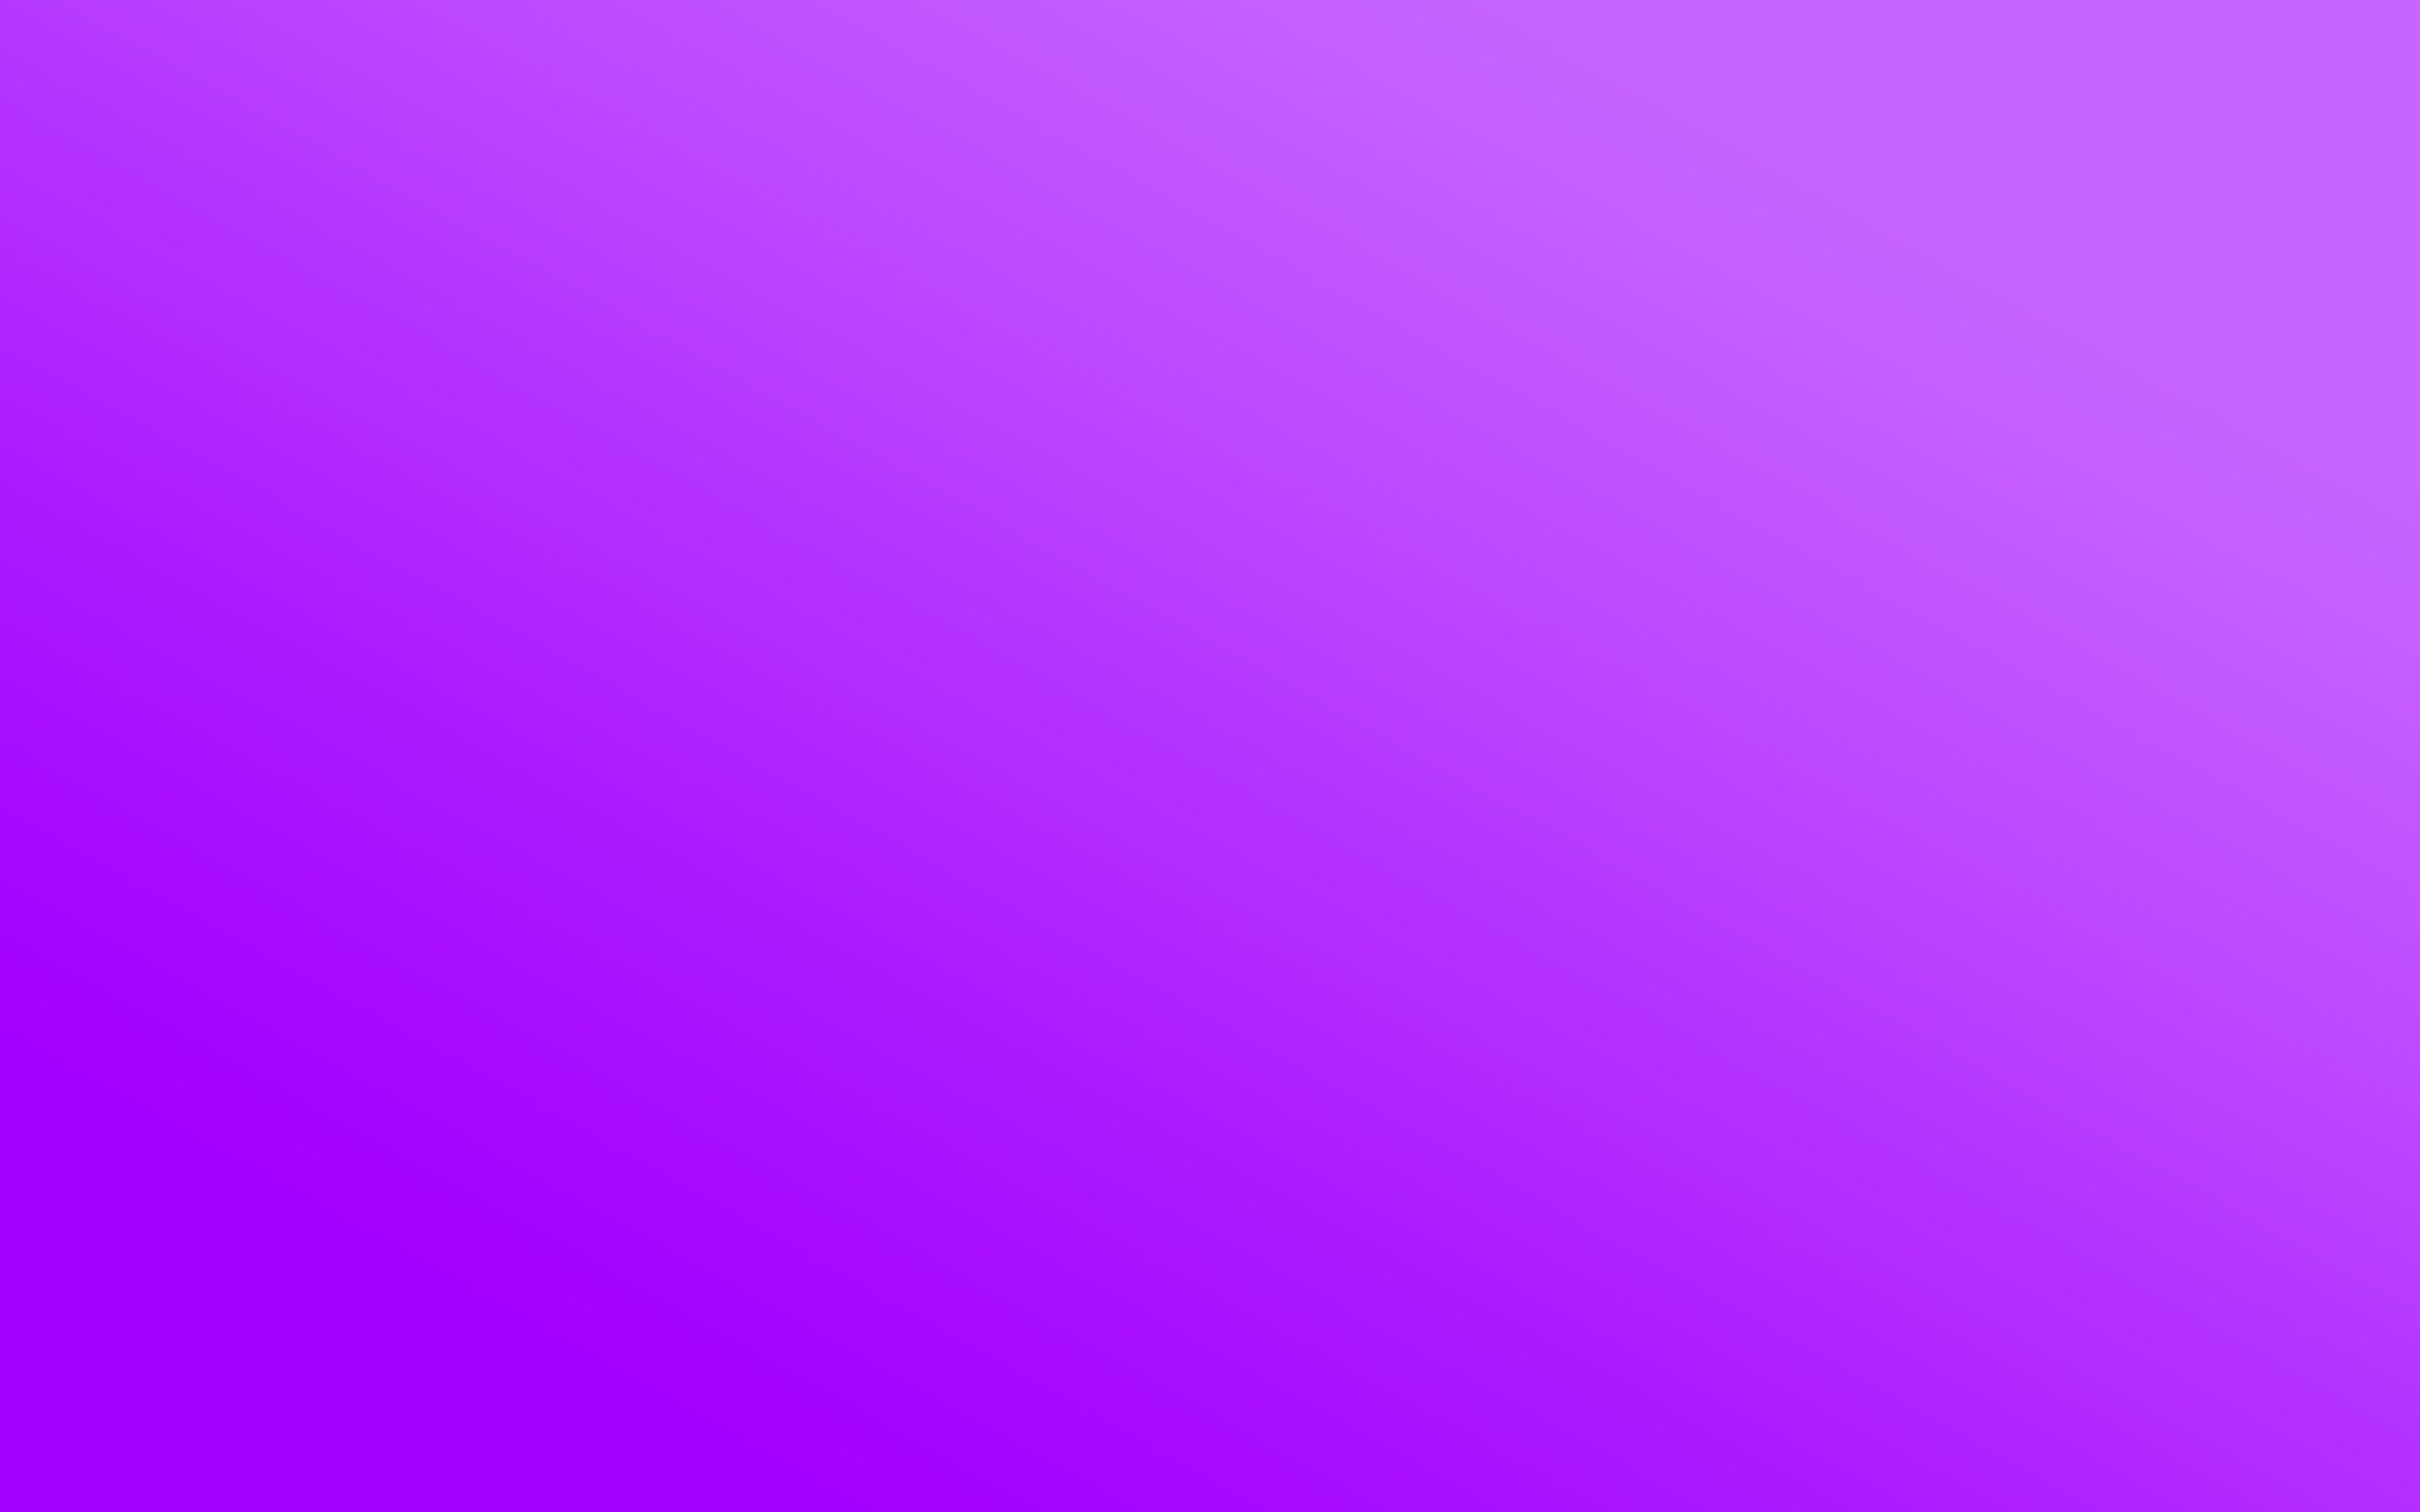 Solid Color HD Wallpapers Purple wallpaper, Purple